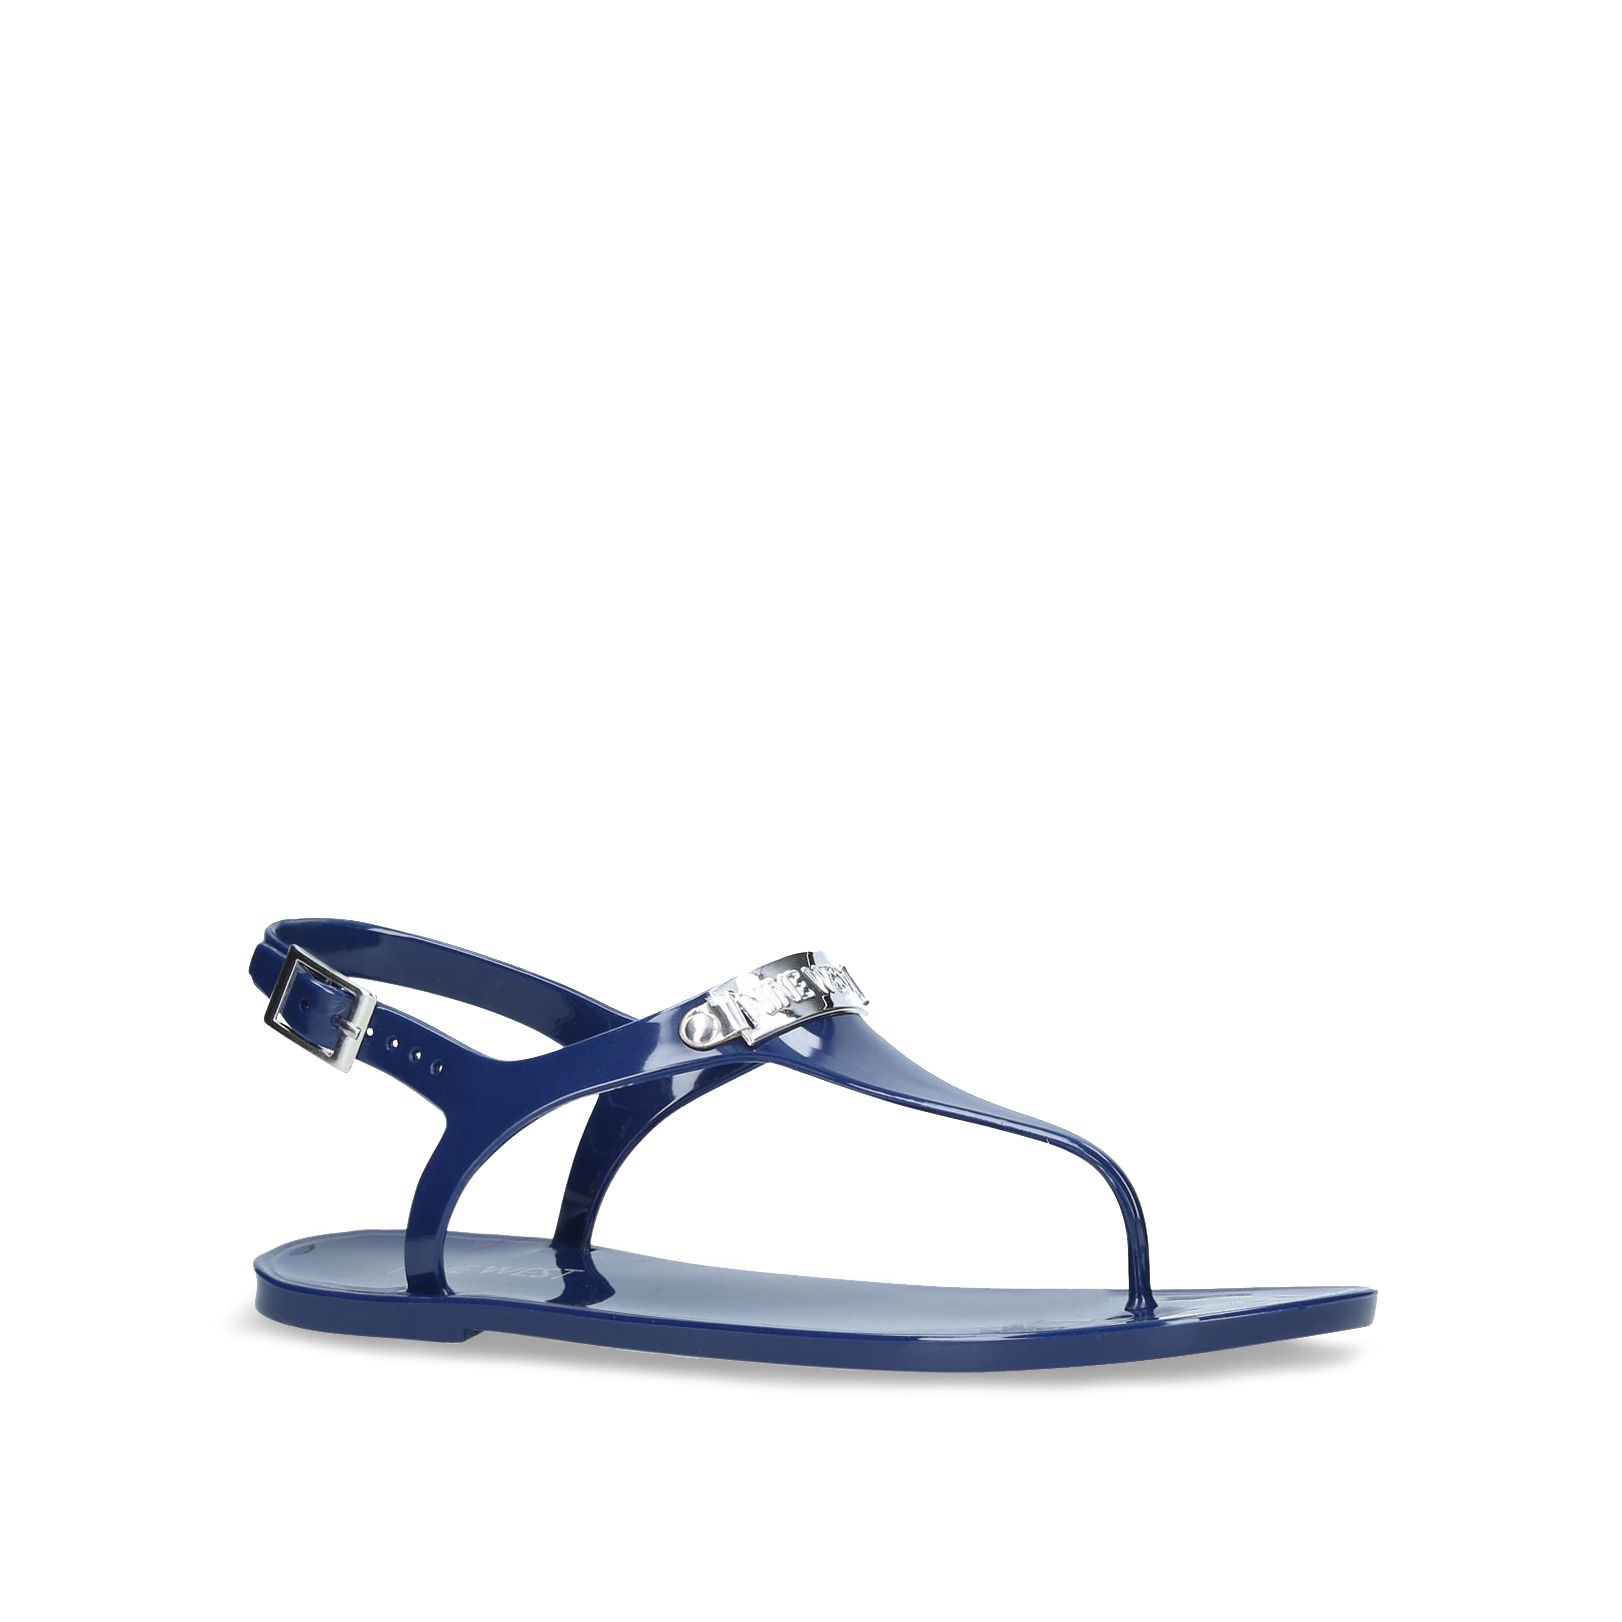 Nine West Jasmine Sandals, Blue